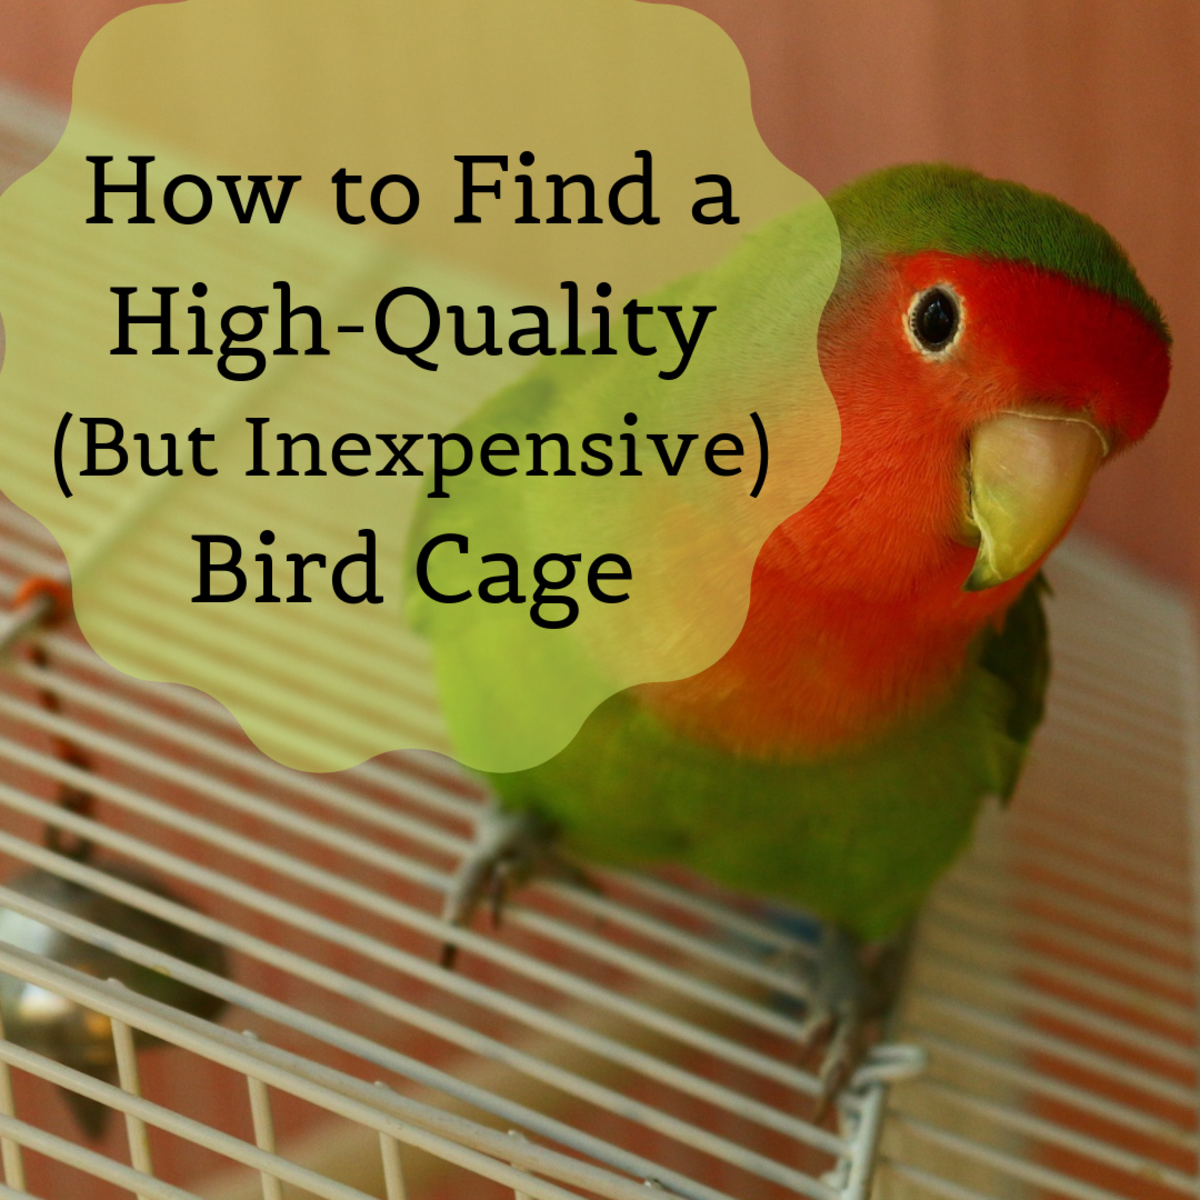 Get some tips on finding a good, long-lasting cage for cheap!